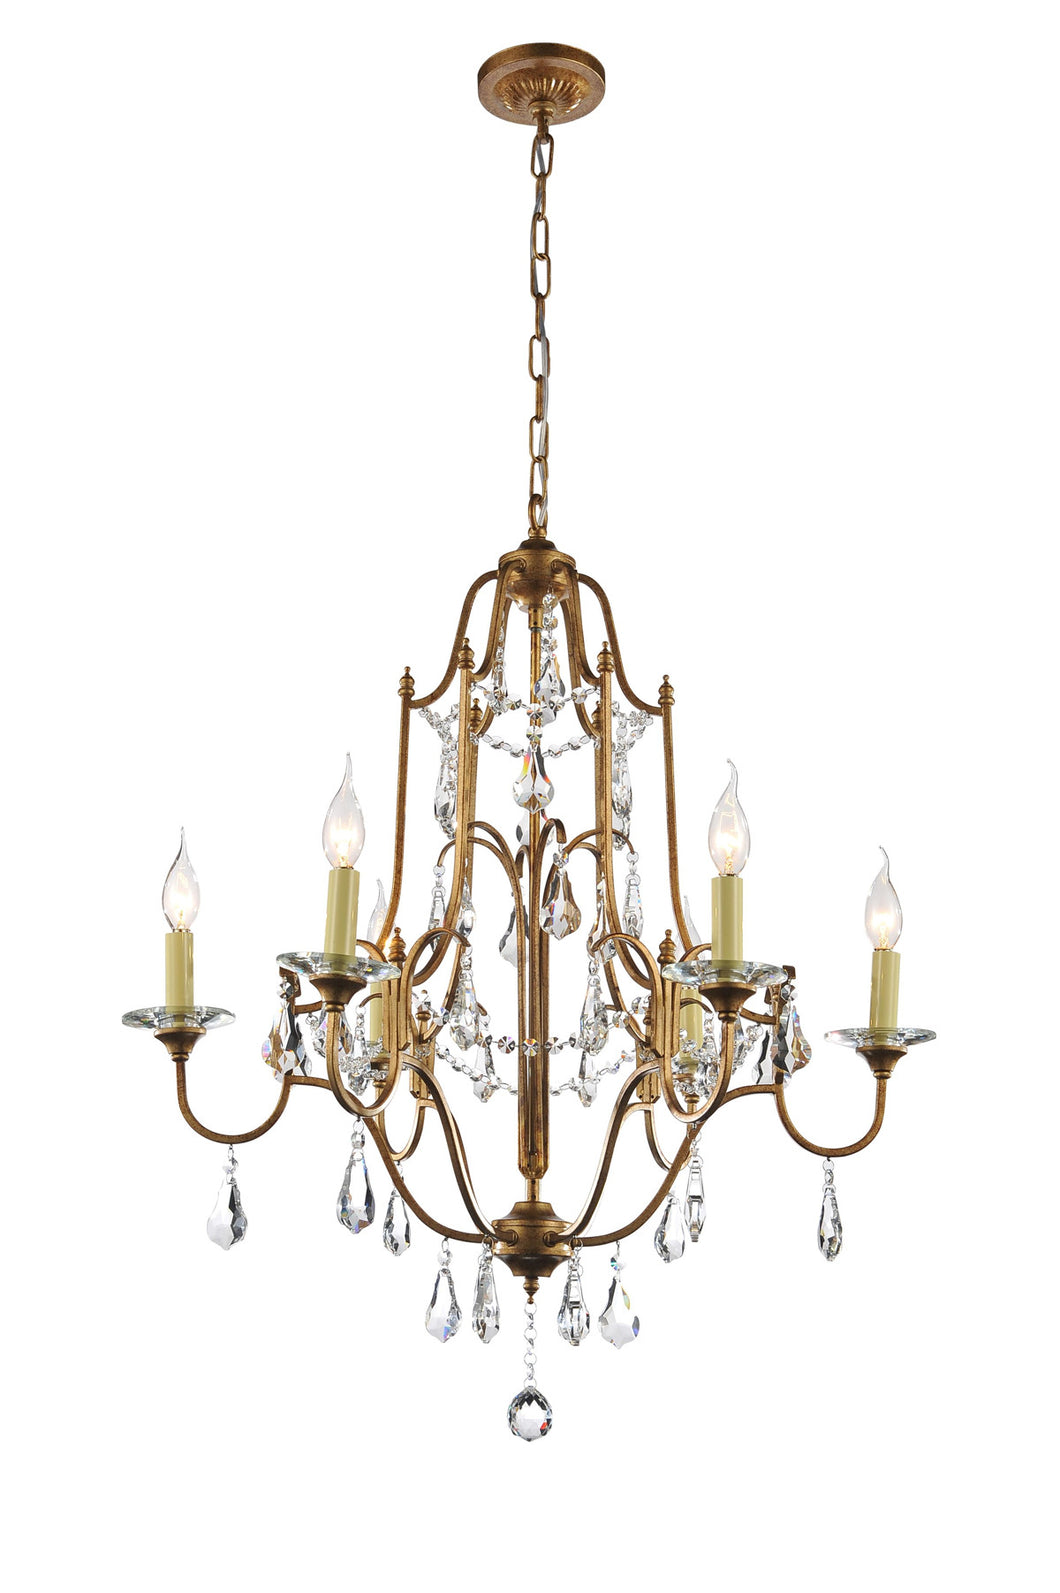 6 Light Up Chandelier with Oxidized Bronze finish